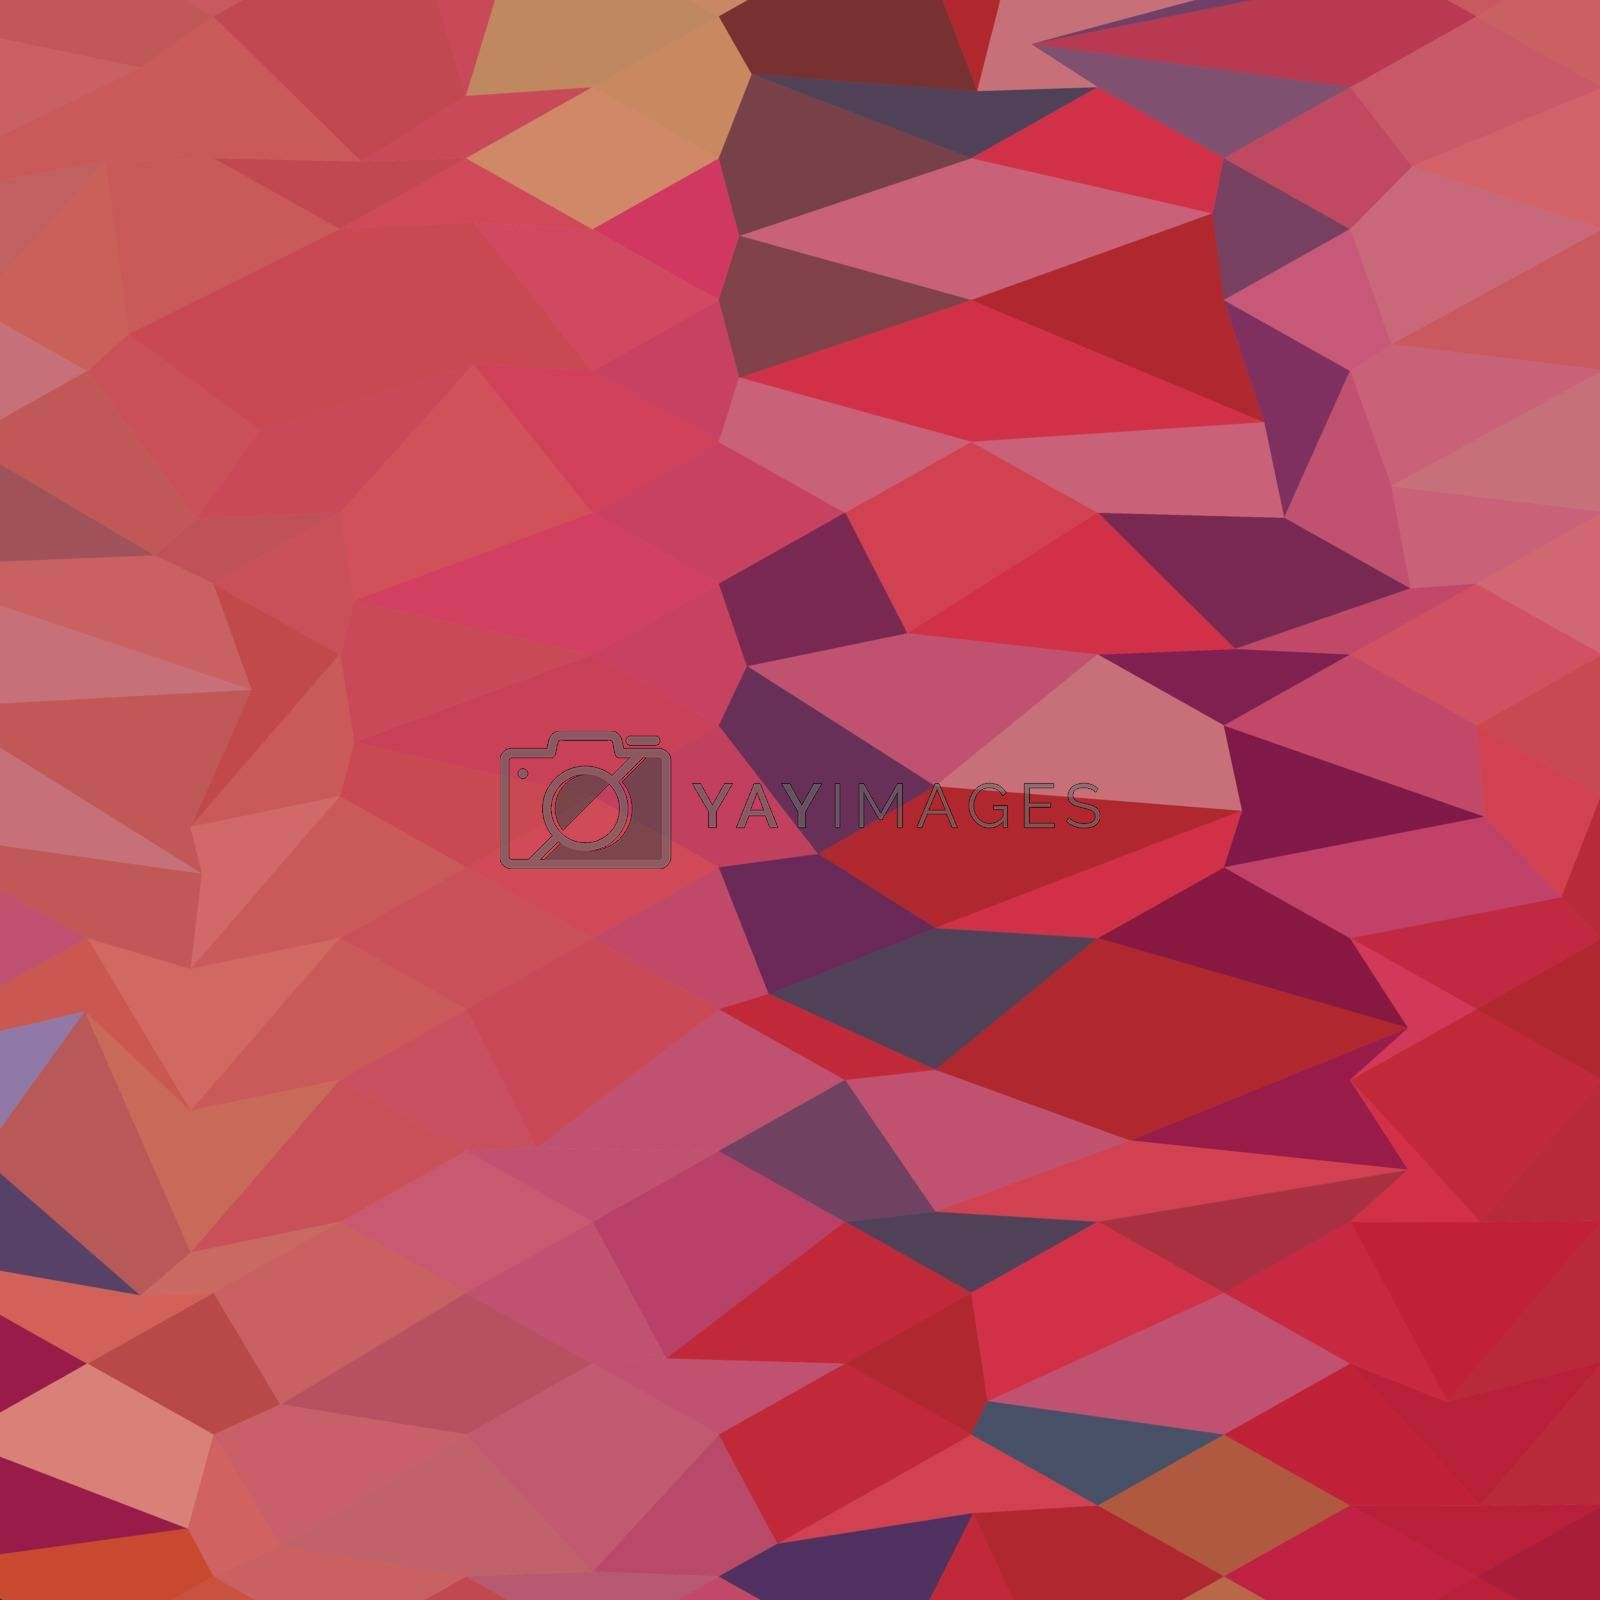 Low polygon style illustration of a carmine pink abstract background.